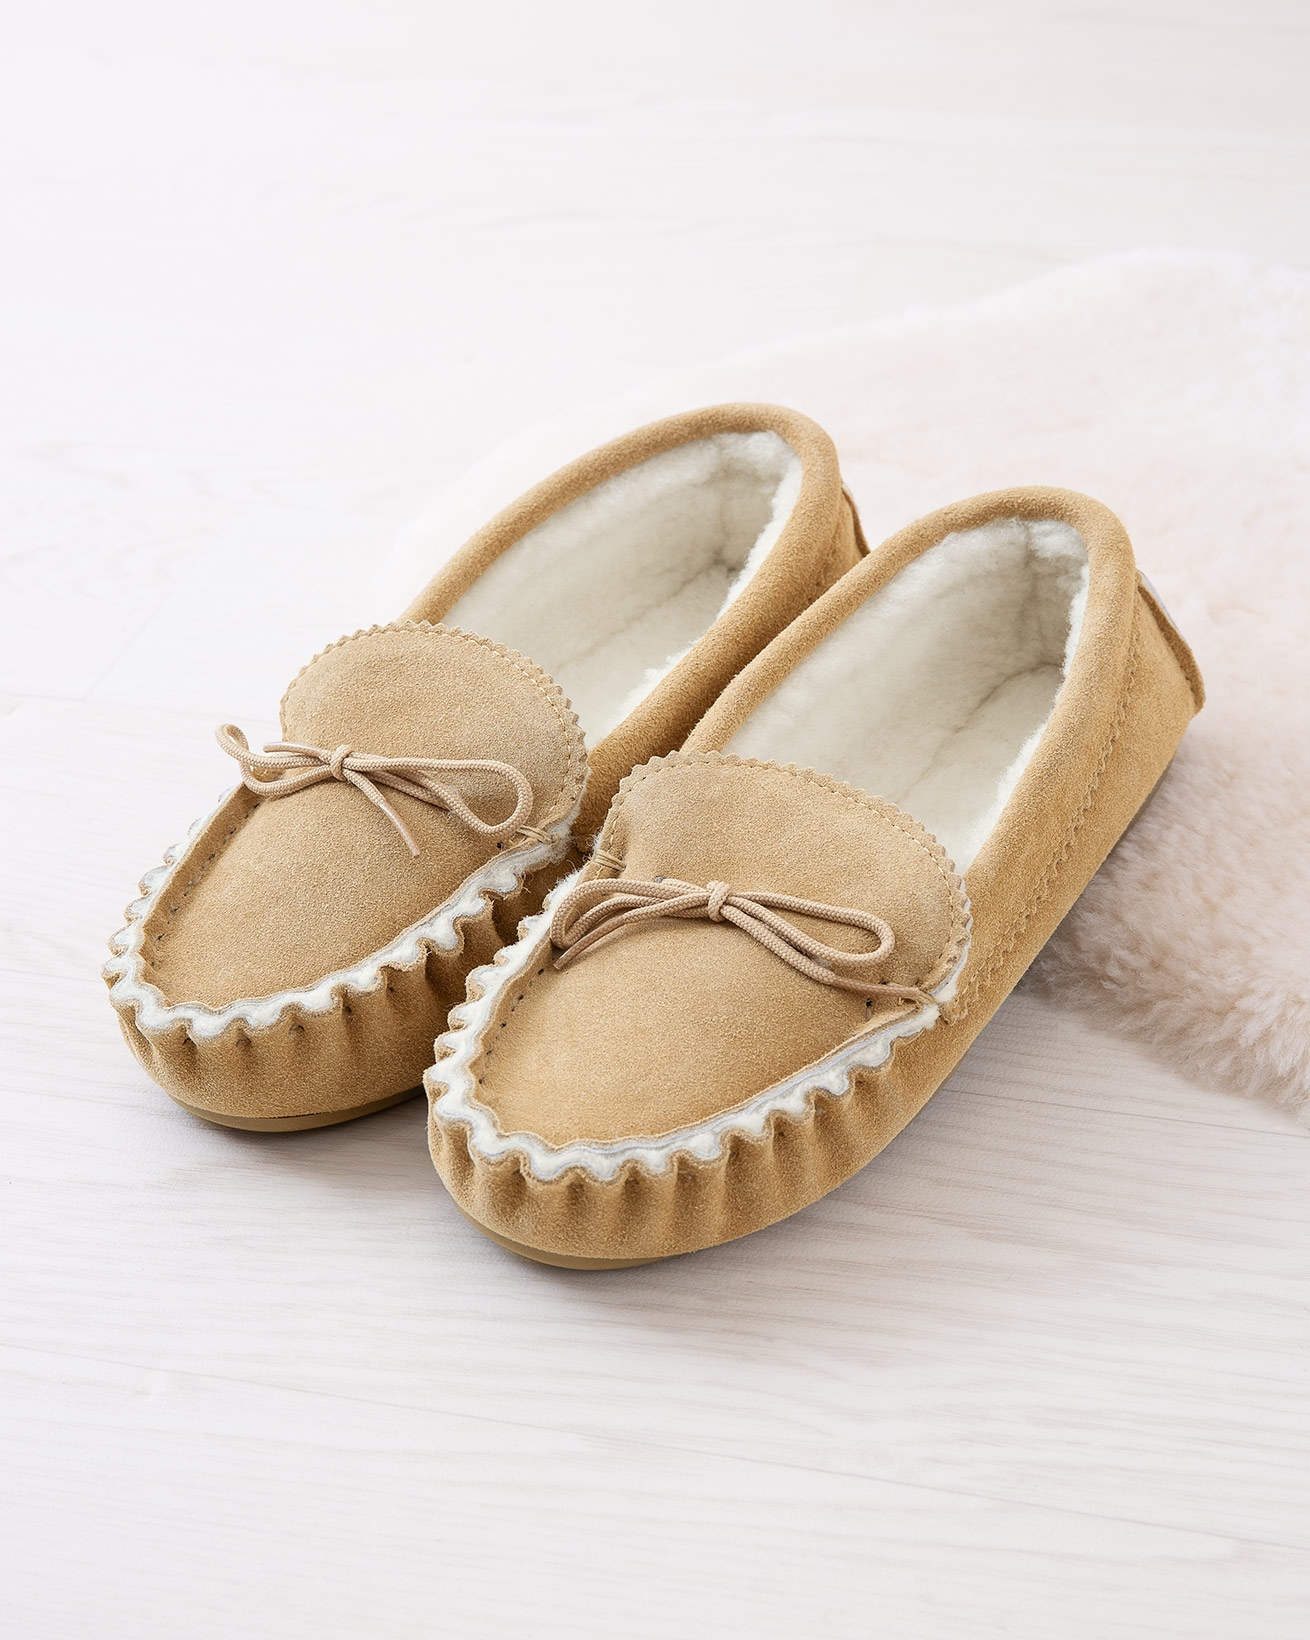 2151_loafer-moccasin-hard-sole_camel_lifestyle_lfs.jpg